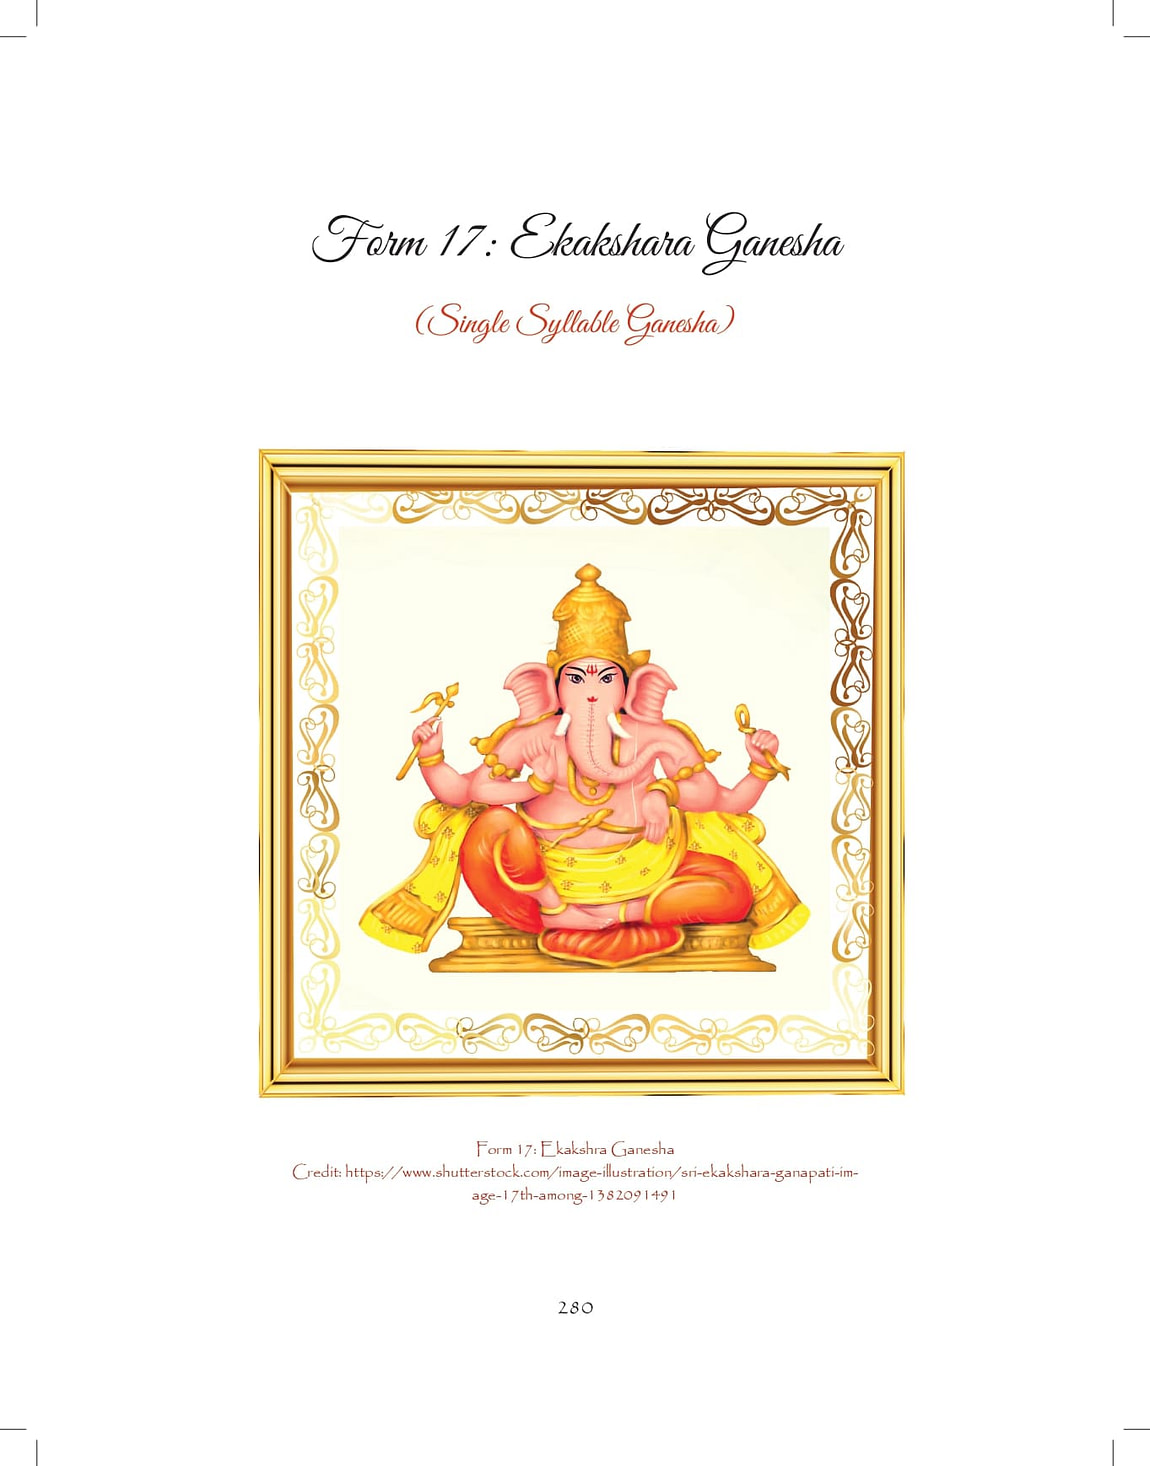 Ganesh-print_pages-to-jpg-0280.jpg